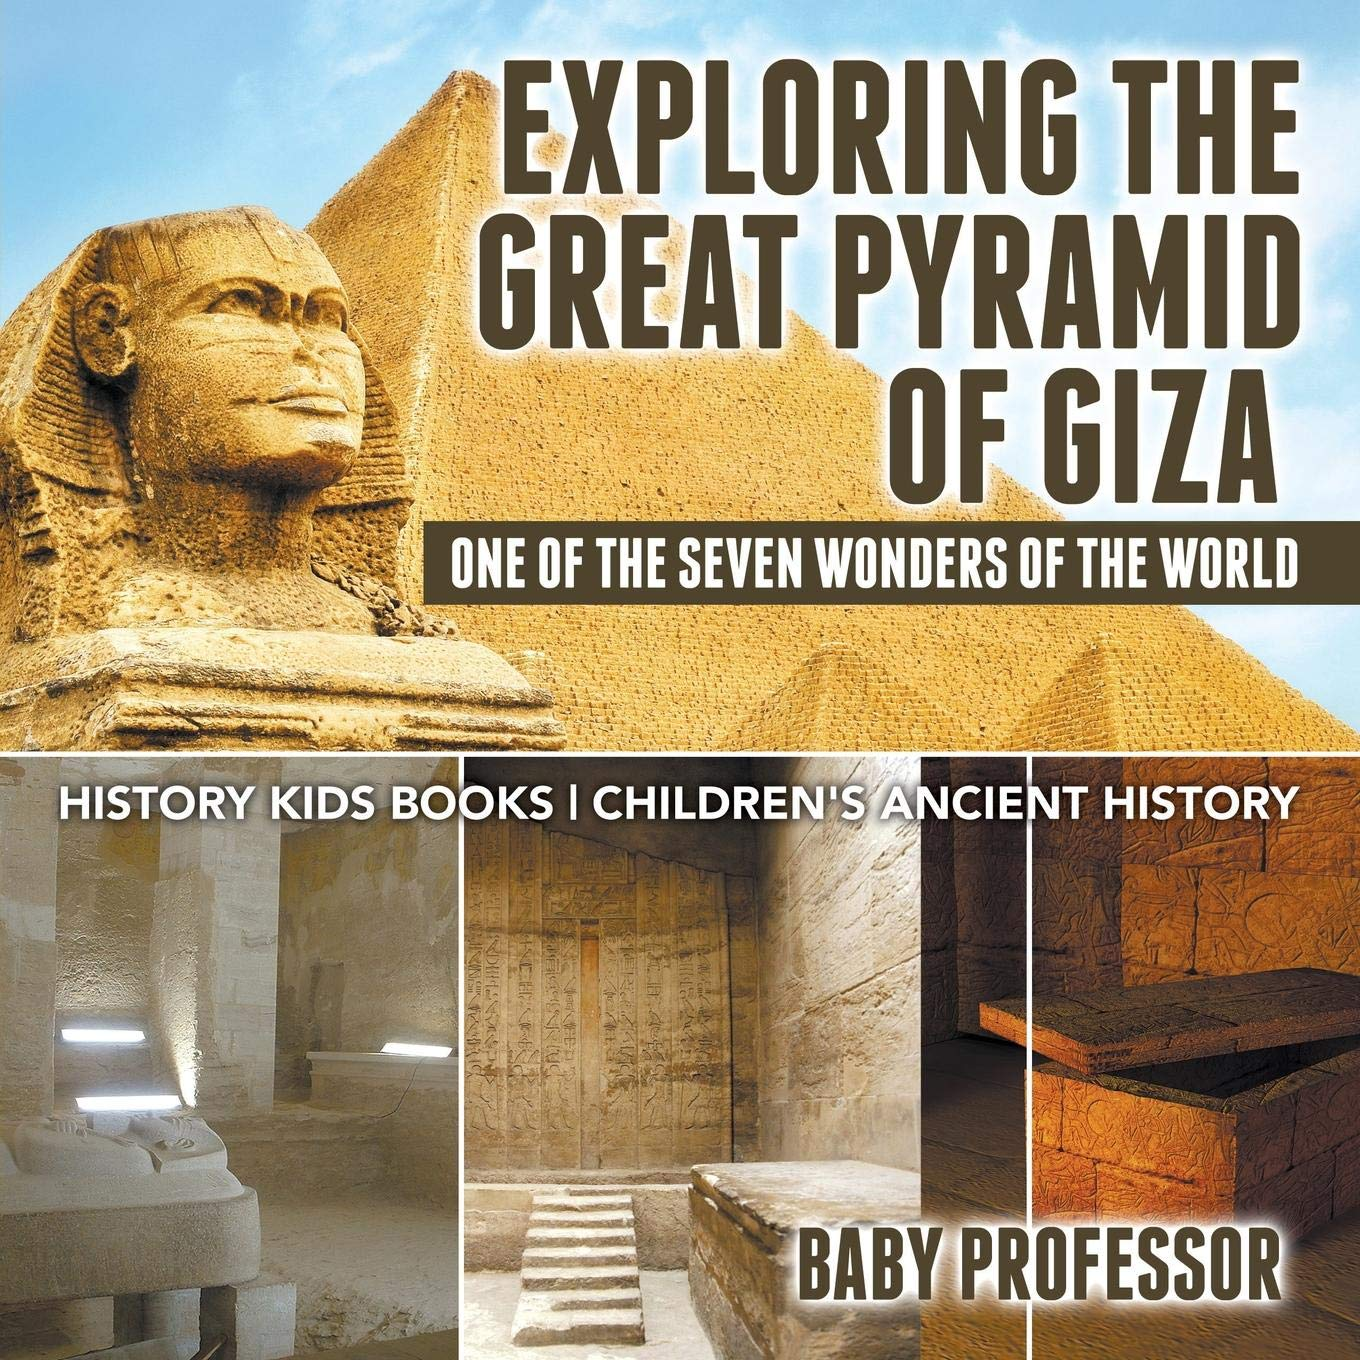 Exploring The Great Pyramid Of Giza   One Of The Seven Wonders Of The World   History Kids Books   Children's Ancient History